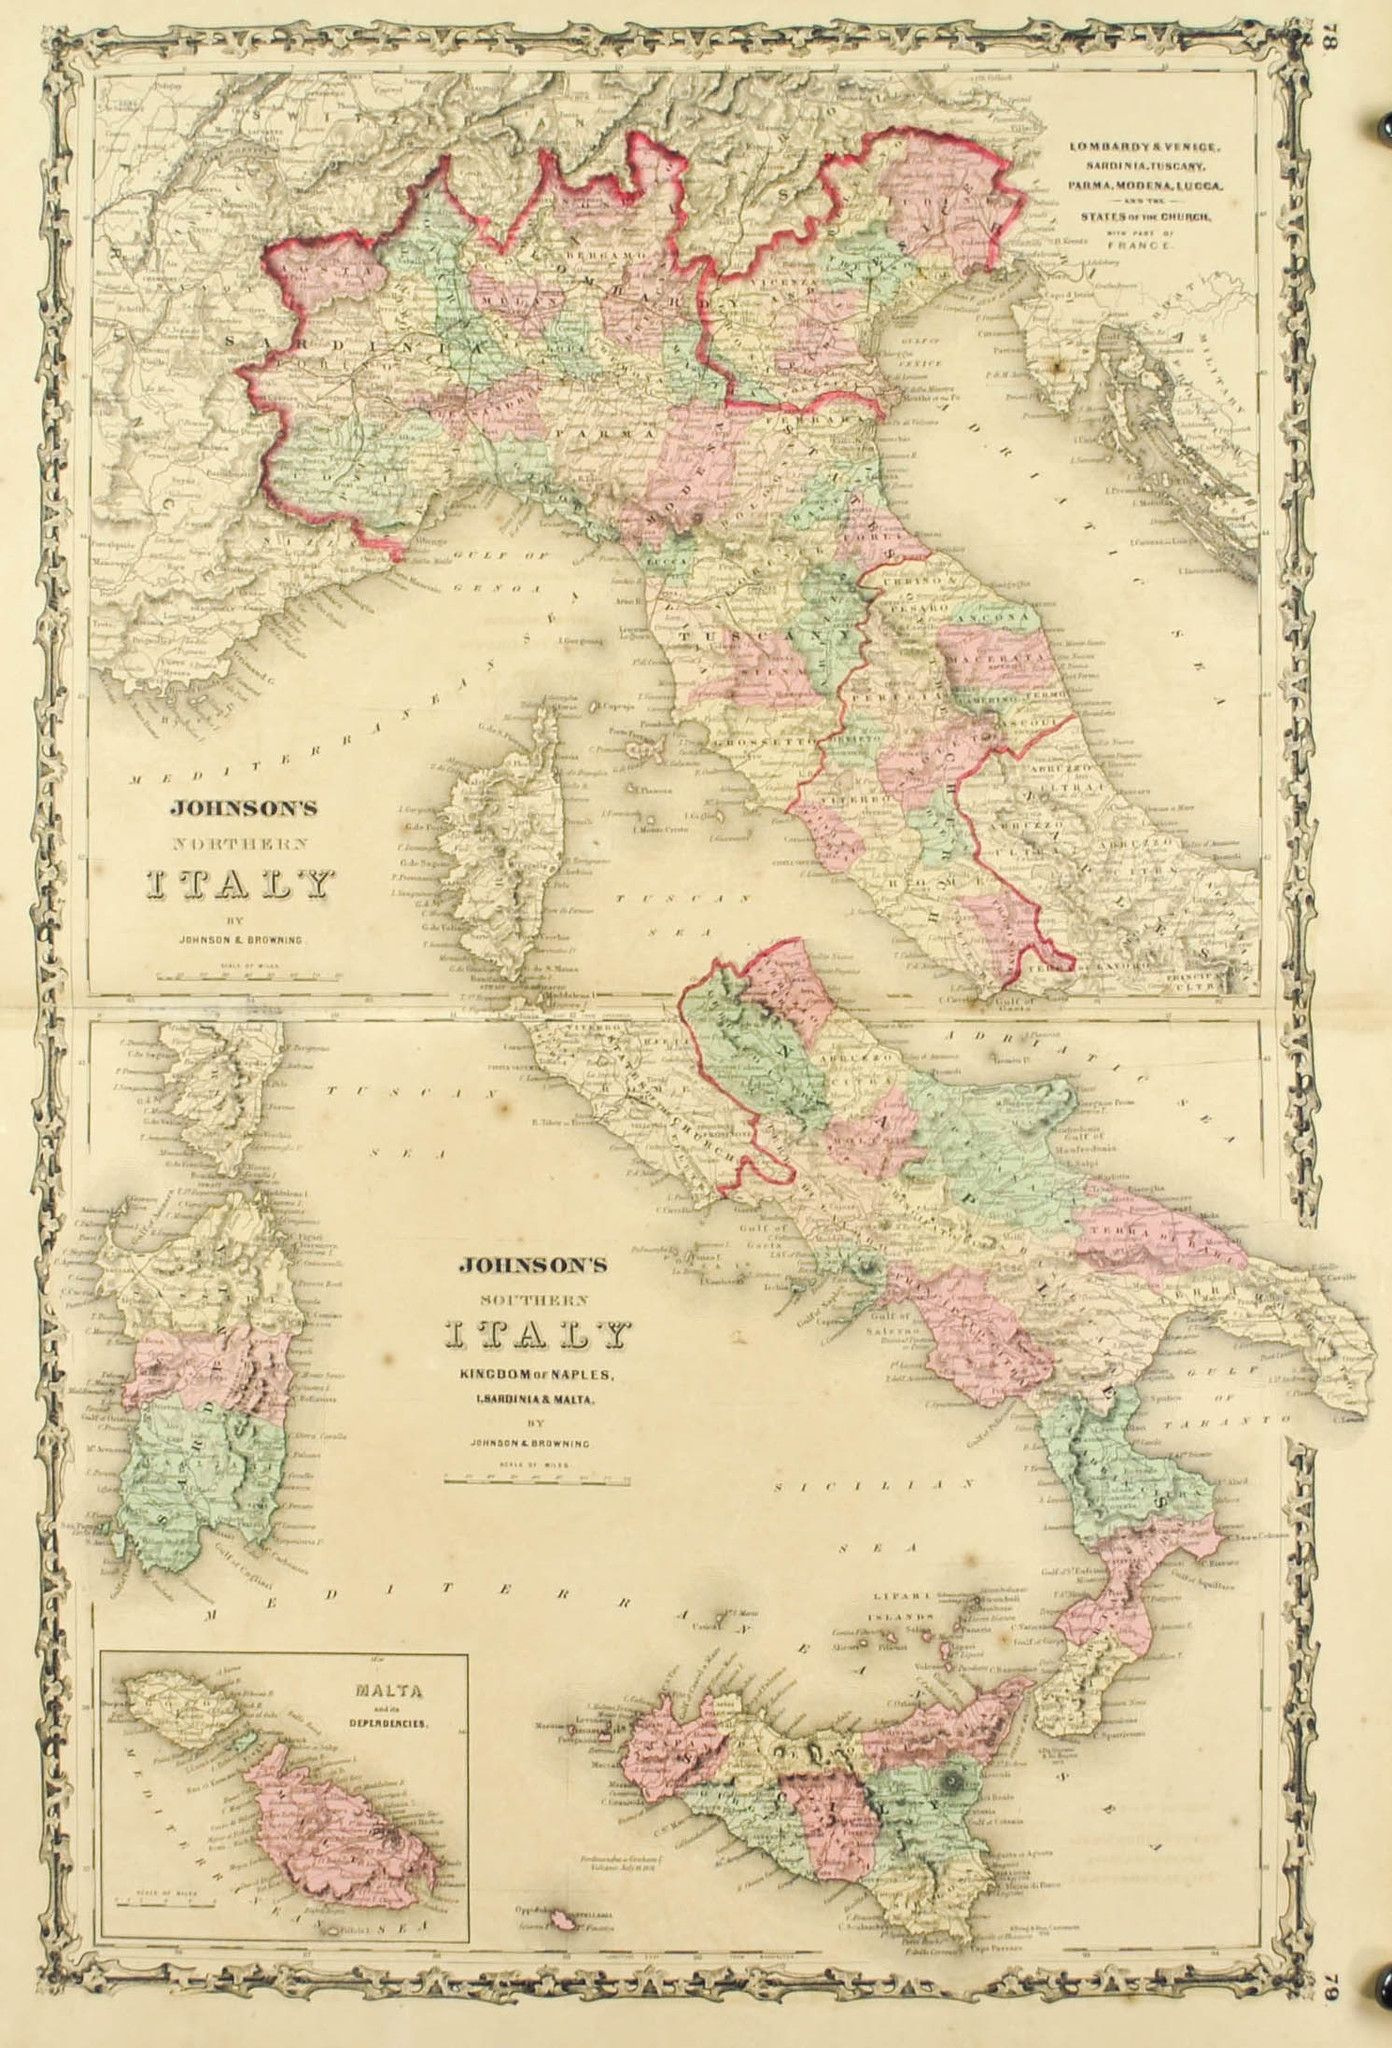 Italy Johnson Hand Colored Map 1860